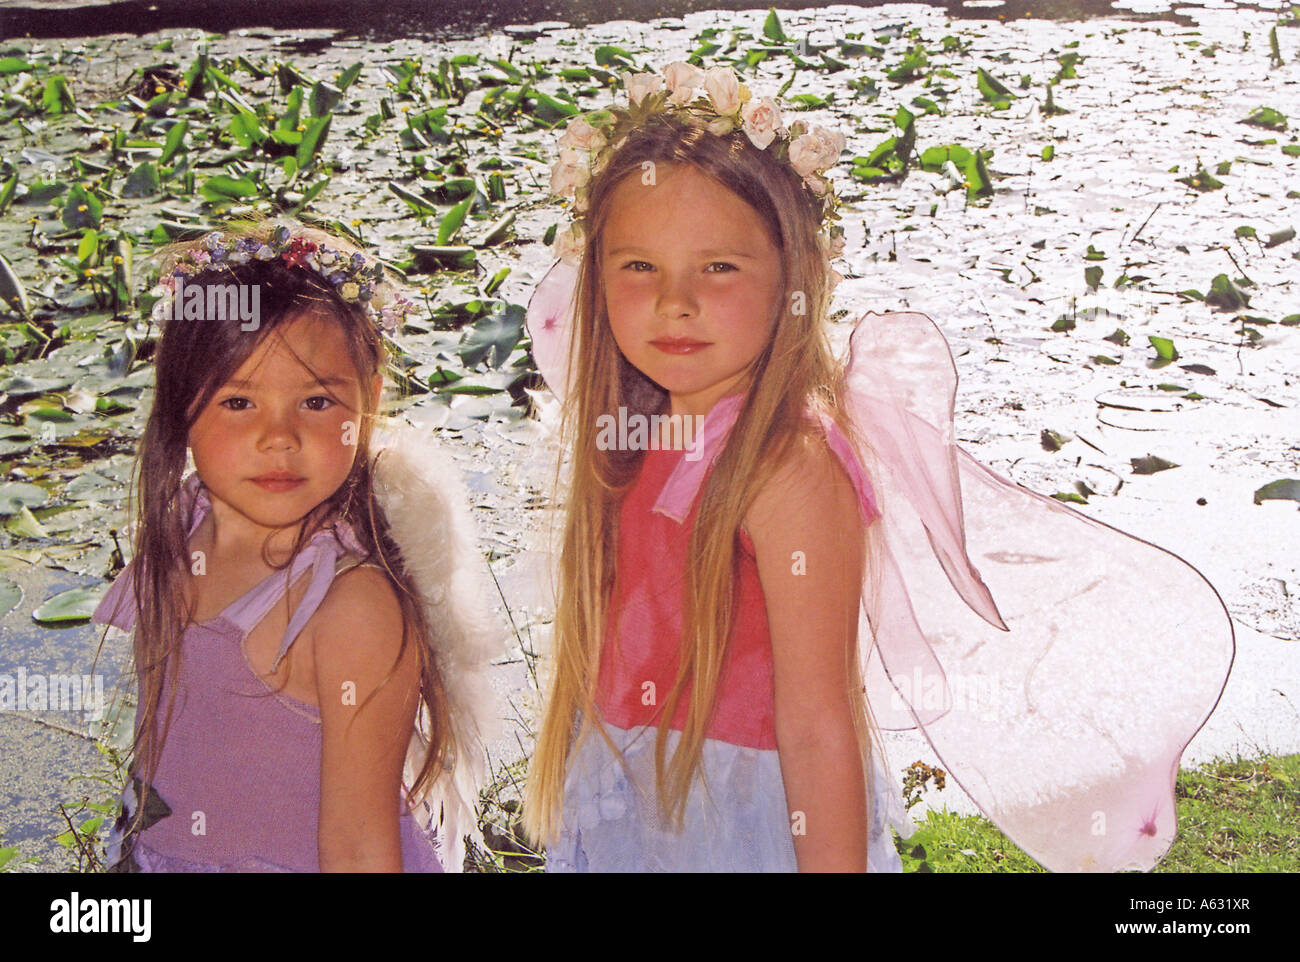 two sisters by the lake - Stock Image